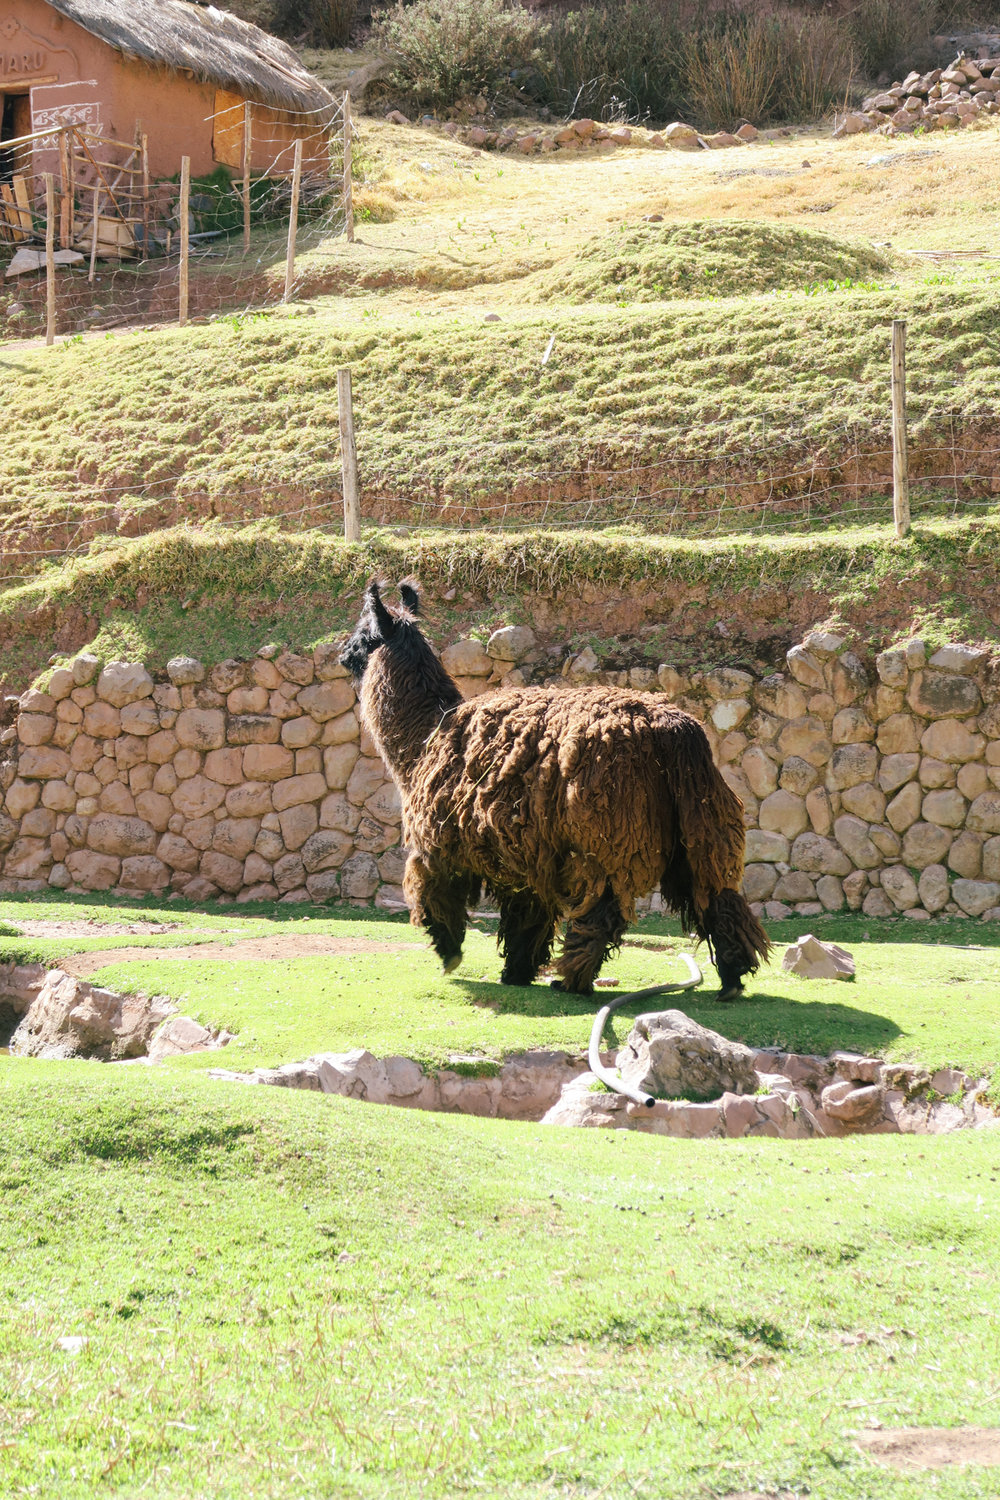 And yes that's the chewbacca version of the llama!